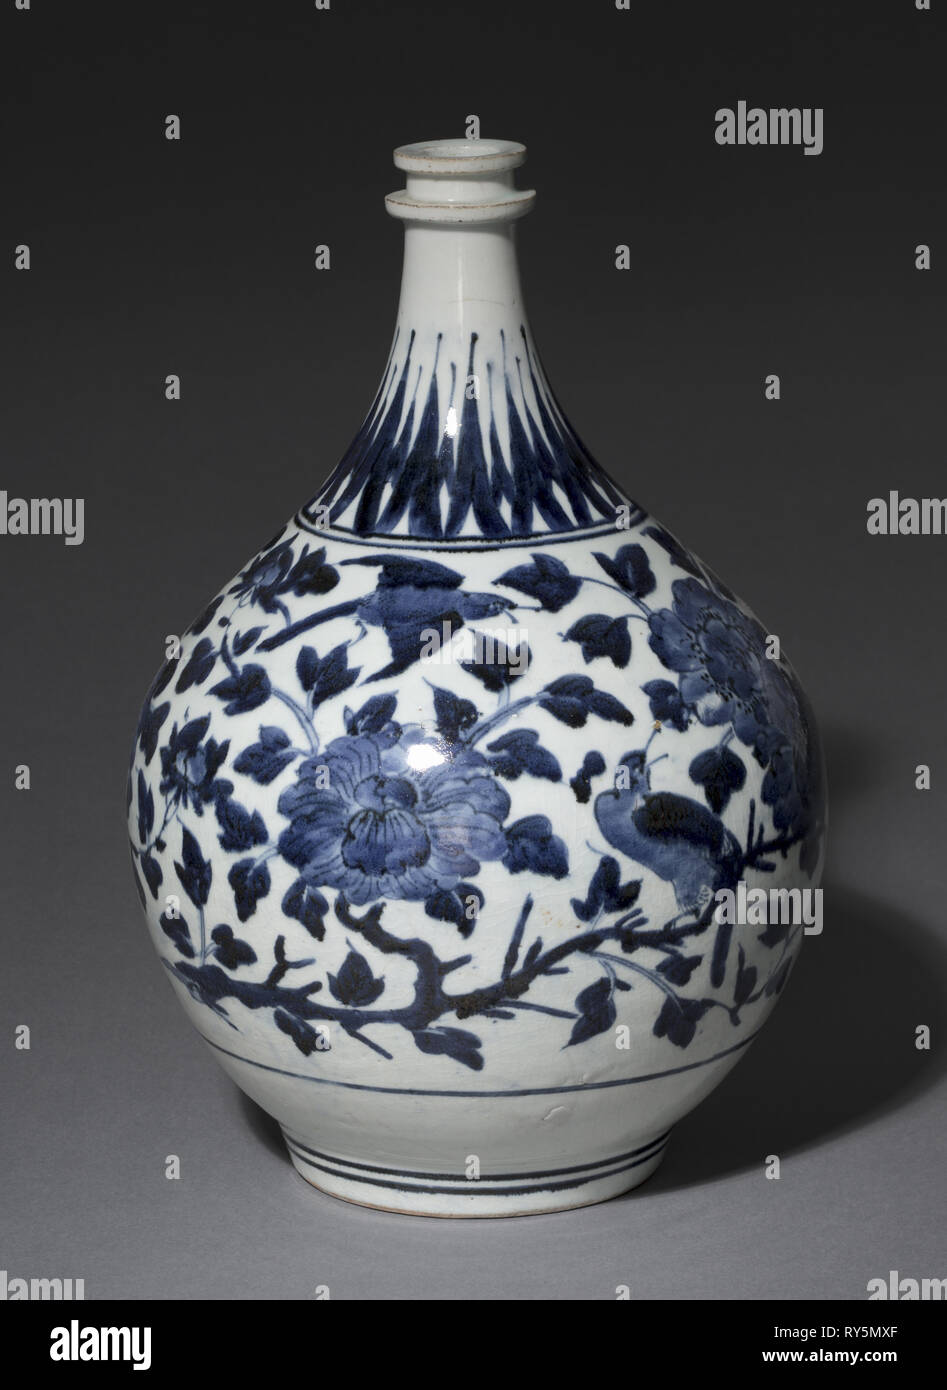 Arita Japan Porcelain Stock Photos Amp Arita Japan Porcelain